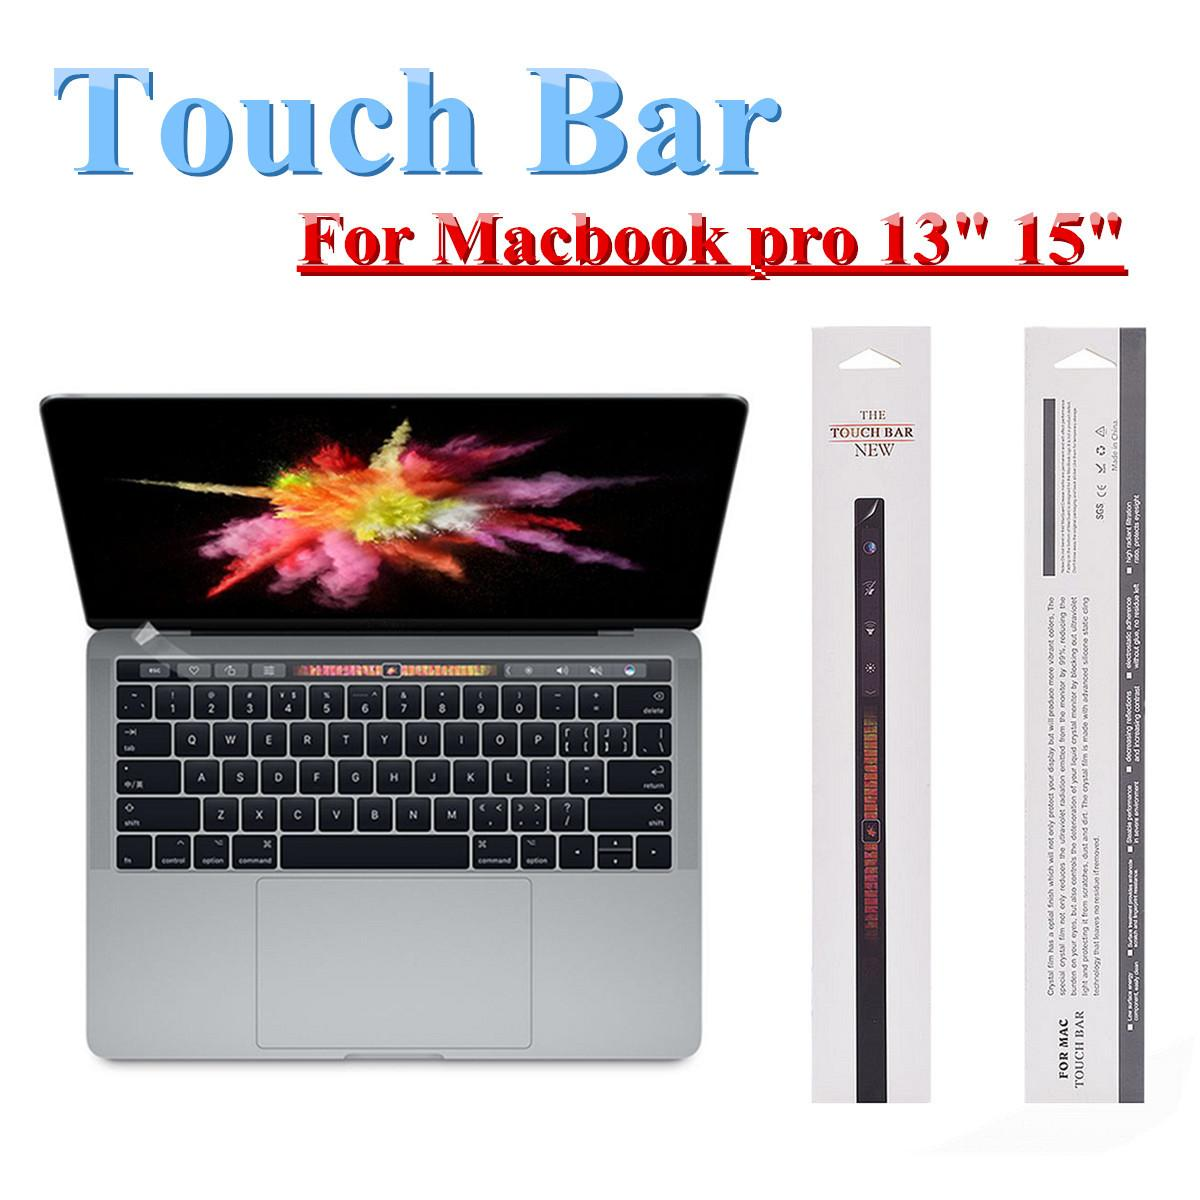 Touch Bar Film New Mac Film Transparent Anti Dust Anti Slip Film for Apple MacBook New Pro 13 with touchbar (A1706/A1989) Laptops Accessories